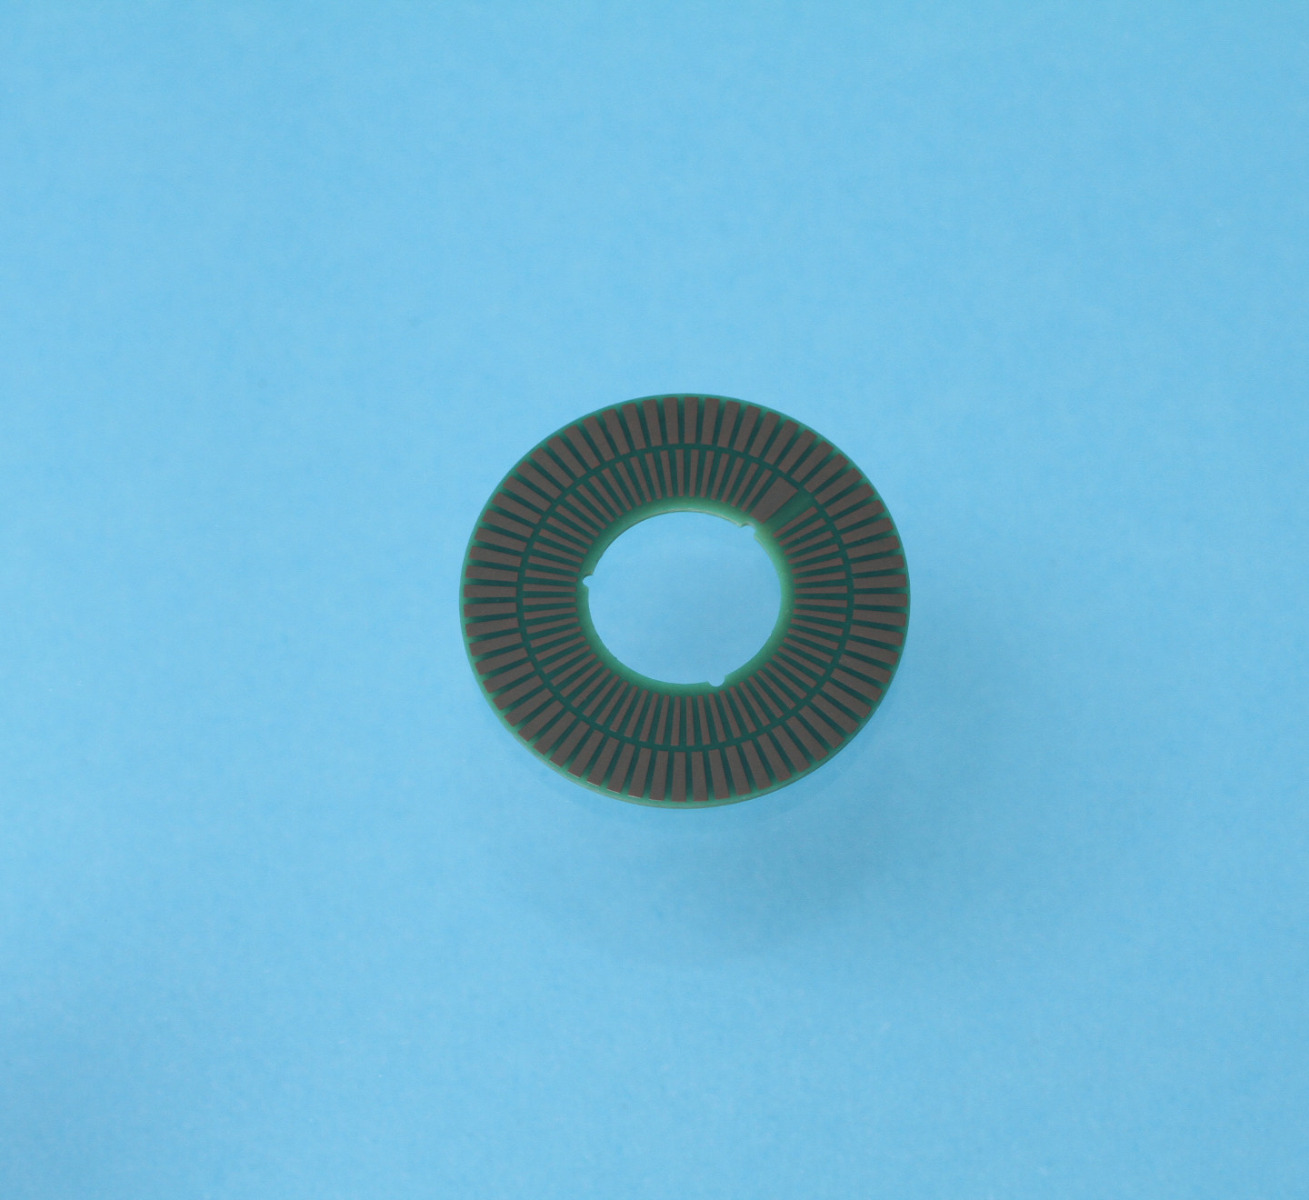 TPCD05 Codewheel with 64 periods, inner diameter 12 mm and outer diameter 28.2 mm for Incremental Encoders IT3402C, IT3403C and IT5602C